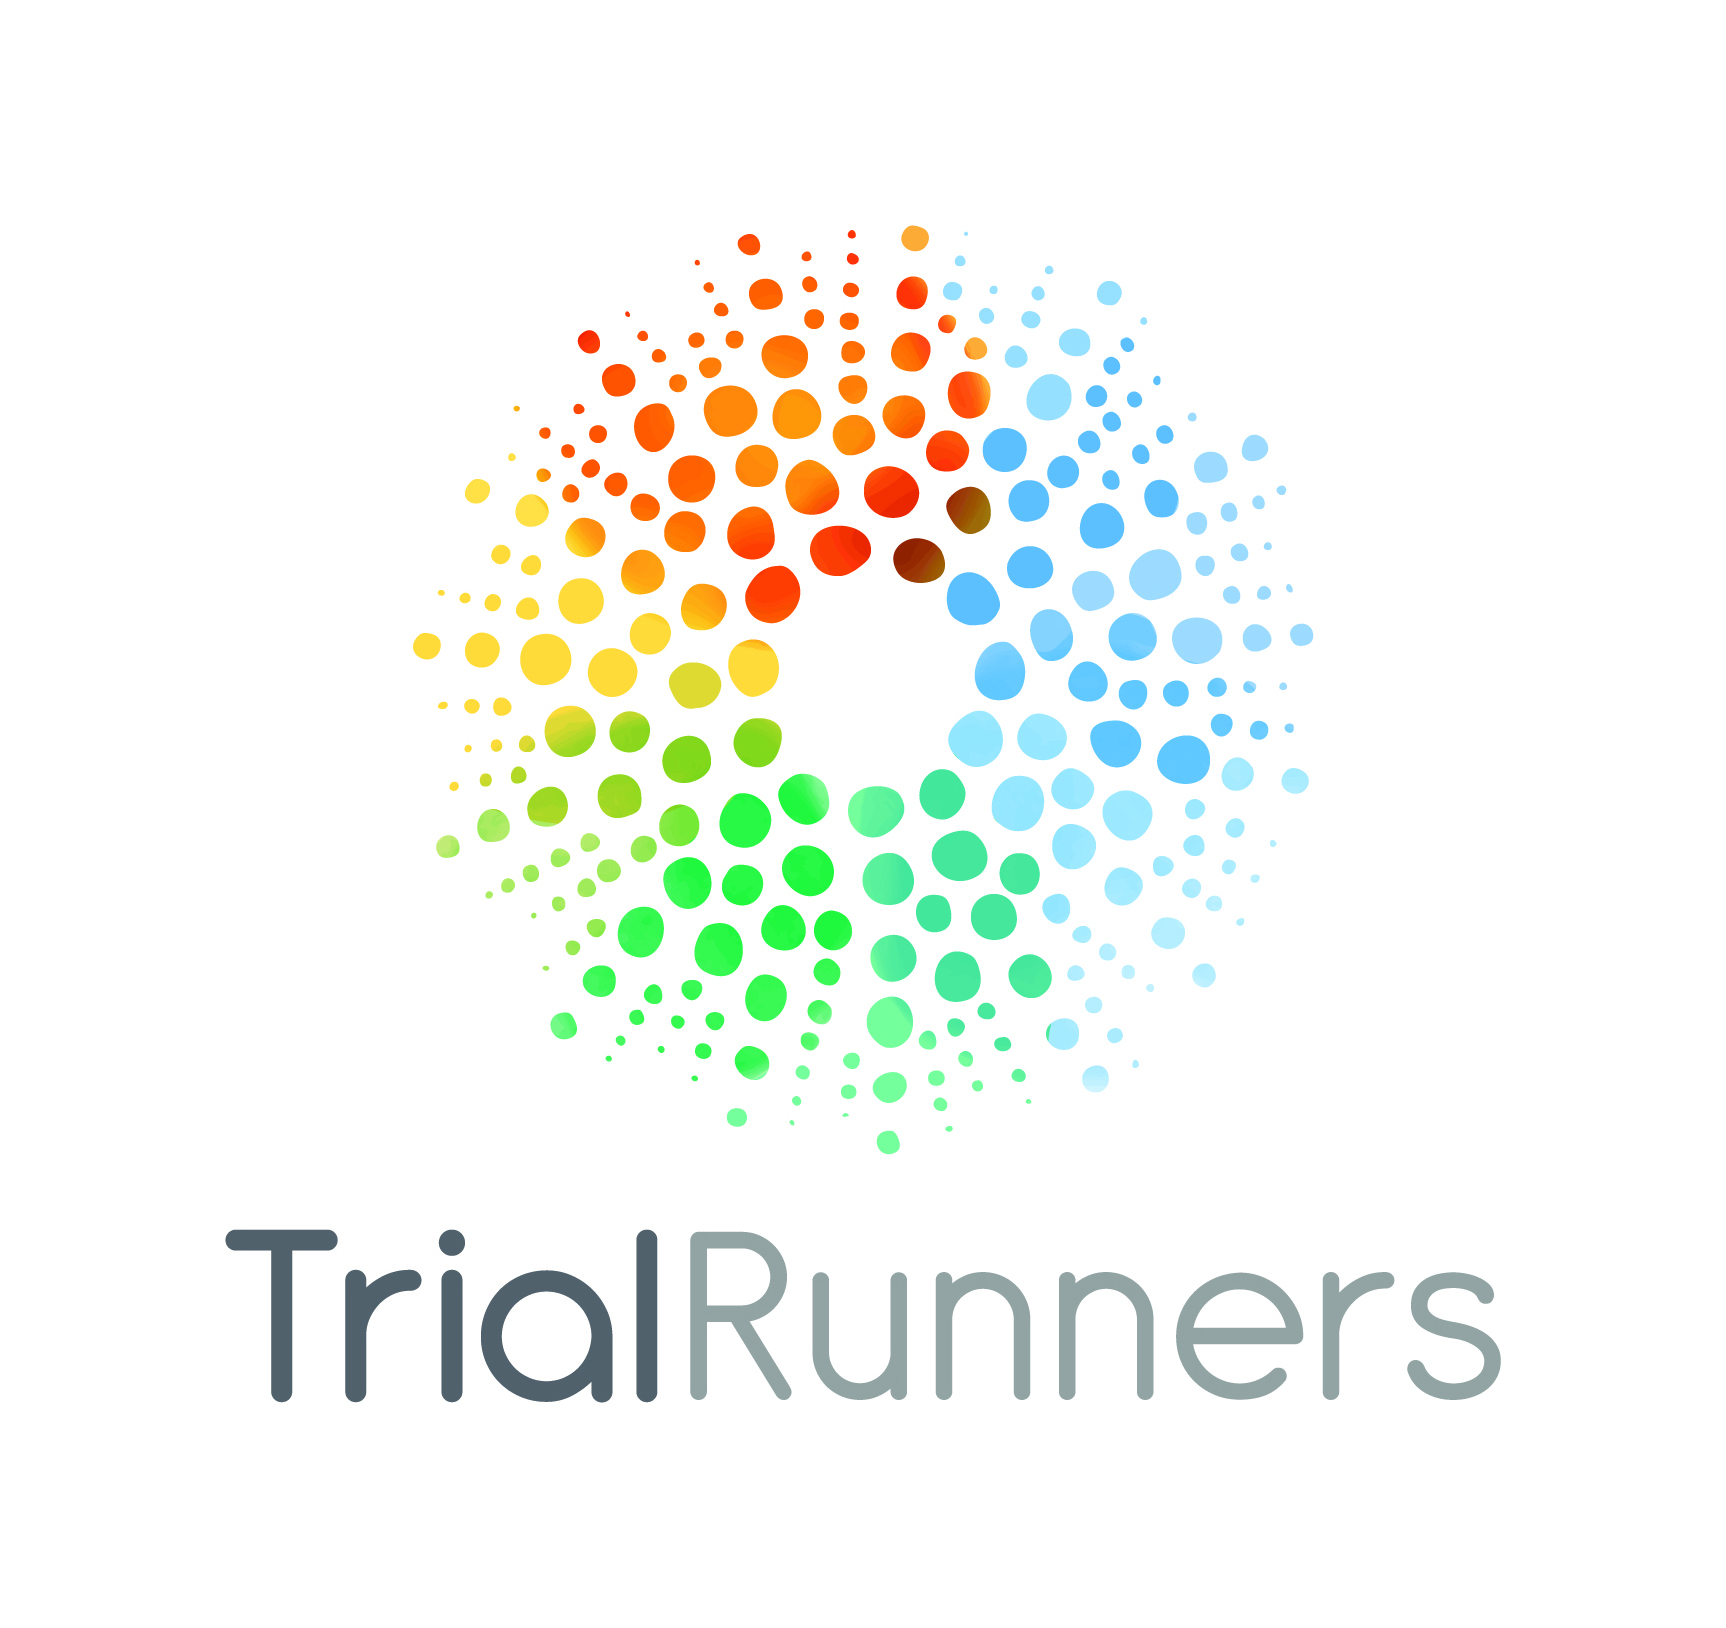 trialrunners logo